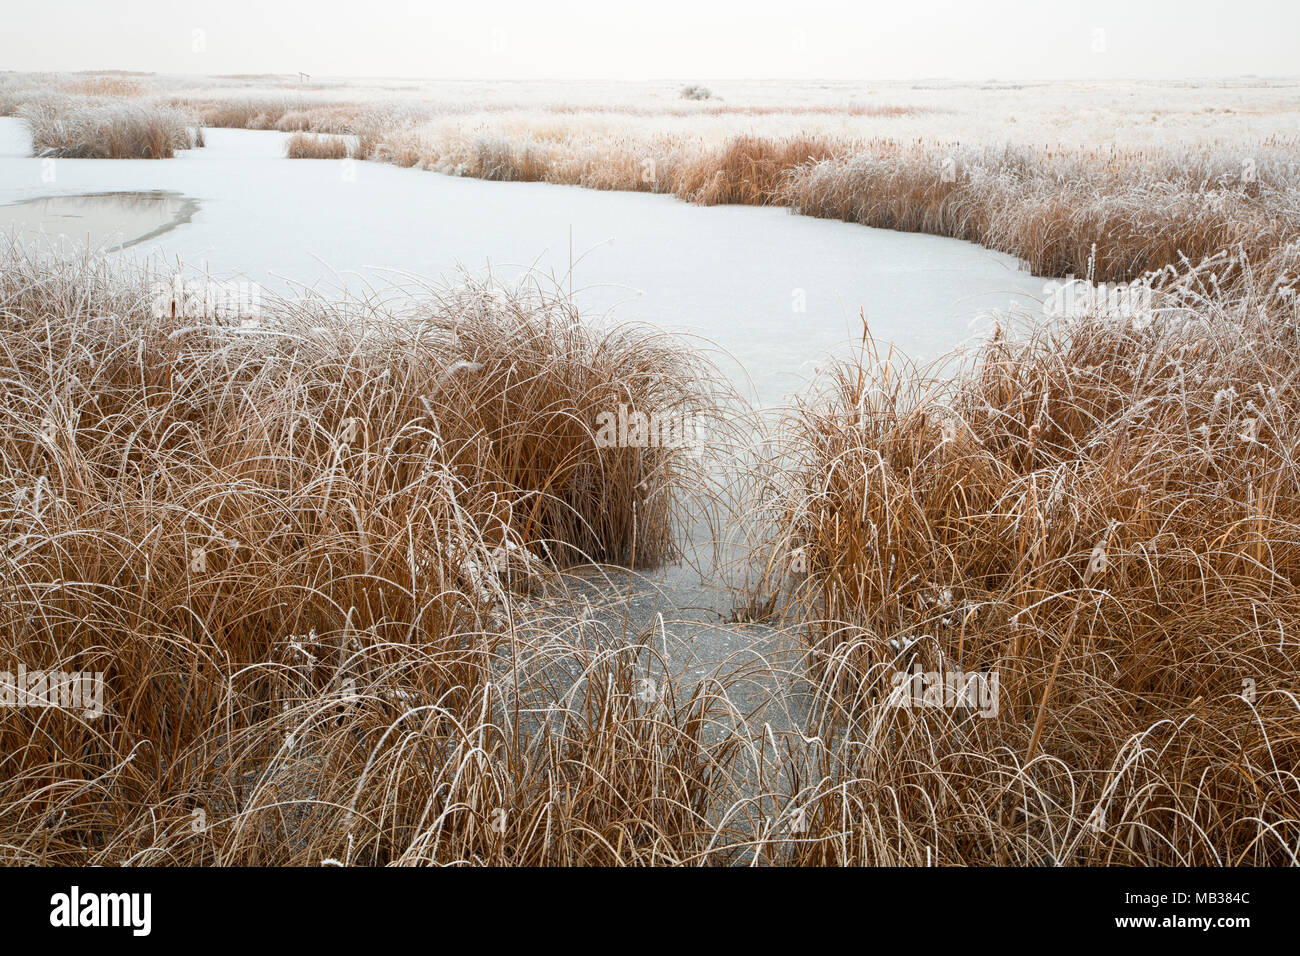 Visitor Center pond with ice, Bear River Migratory Bird Refuge, Utah - Stock Image